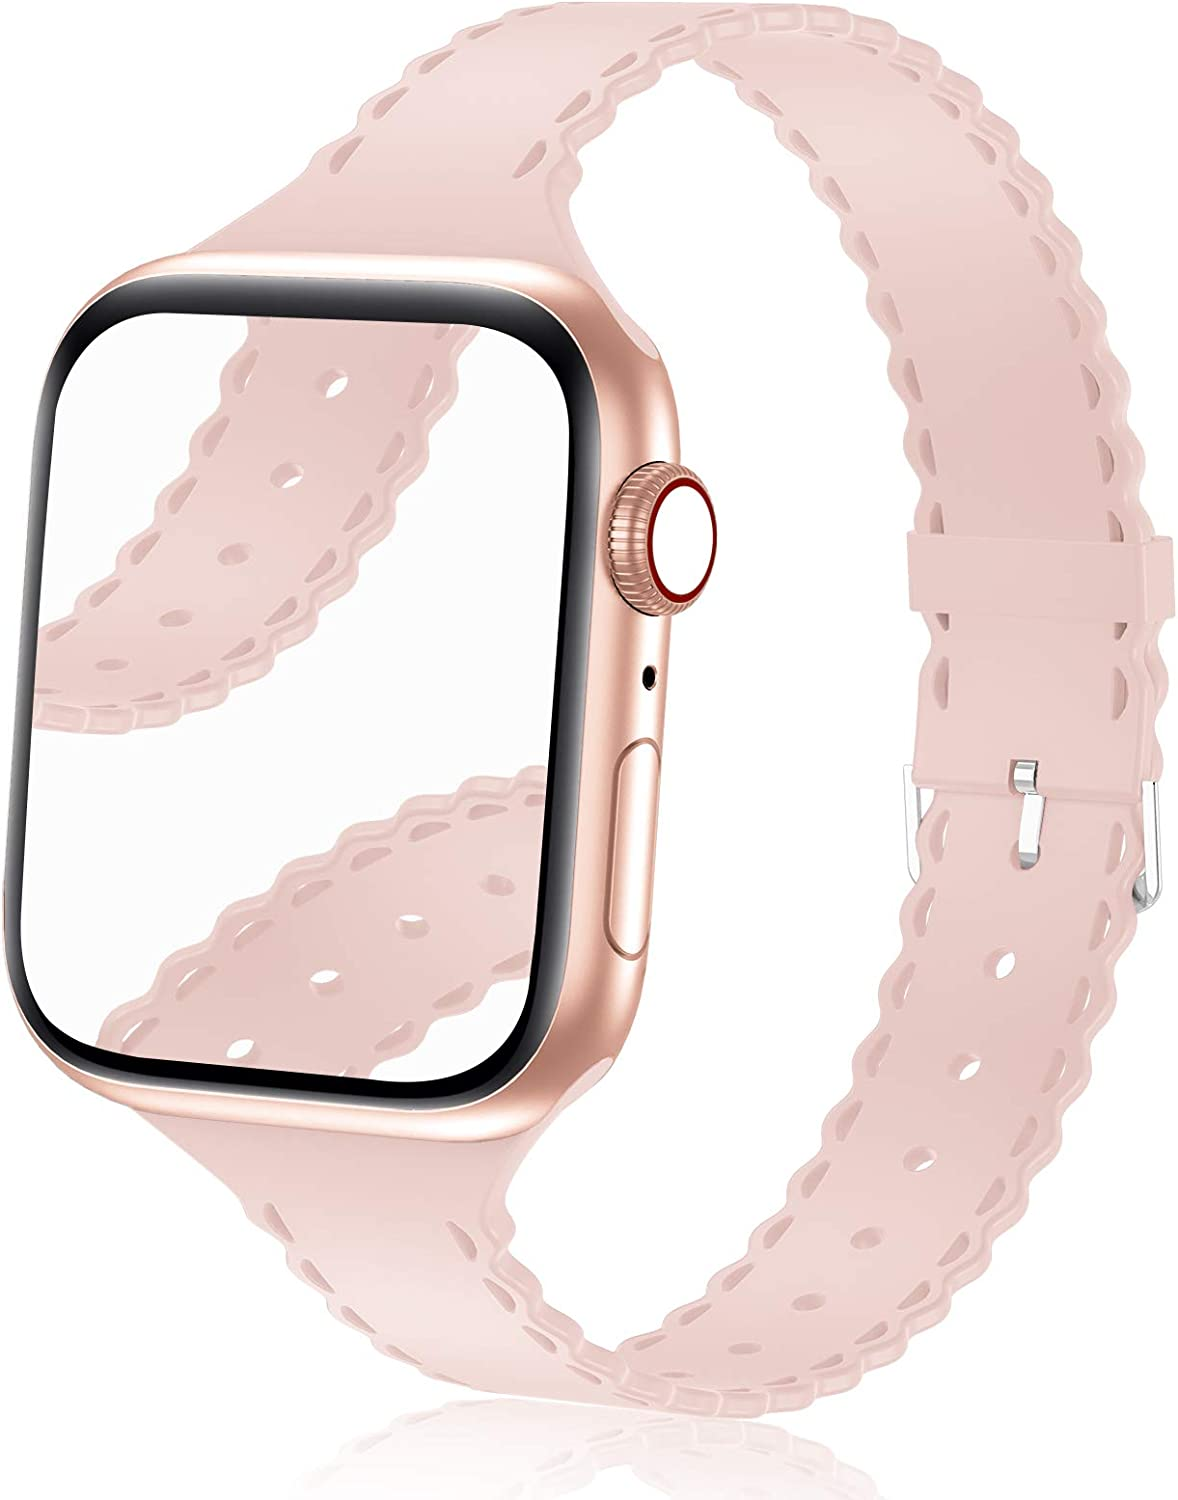 Bandiction Compatible with Apple Watch Bands 38mm 40mm Women Slim Thin iWatch Bands 38mm 40mm Soft Silicone Sport Band Narrow Watch Strap Compatible for Apple Watch SE Series 6 5 4 3 2 1, Sand Pink